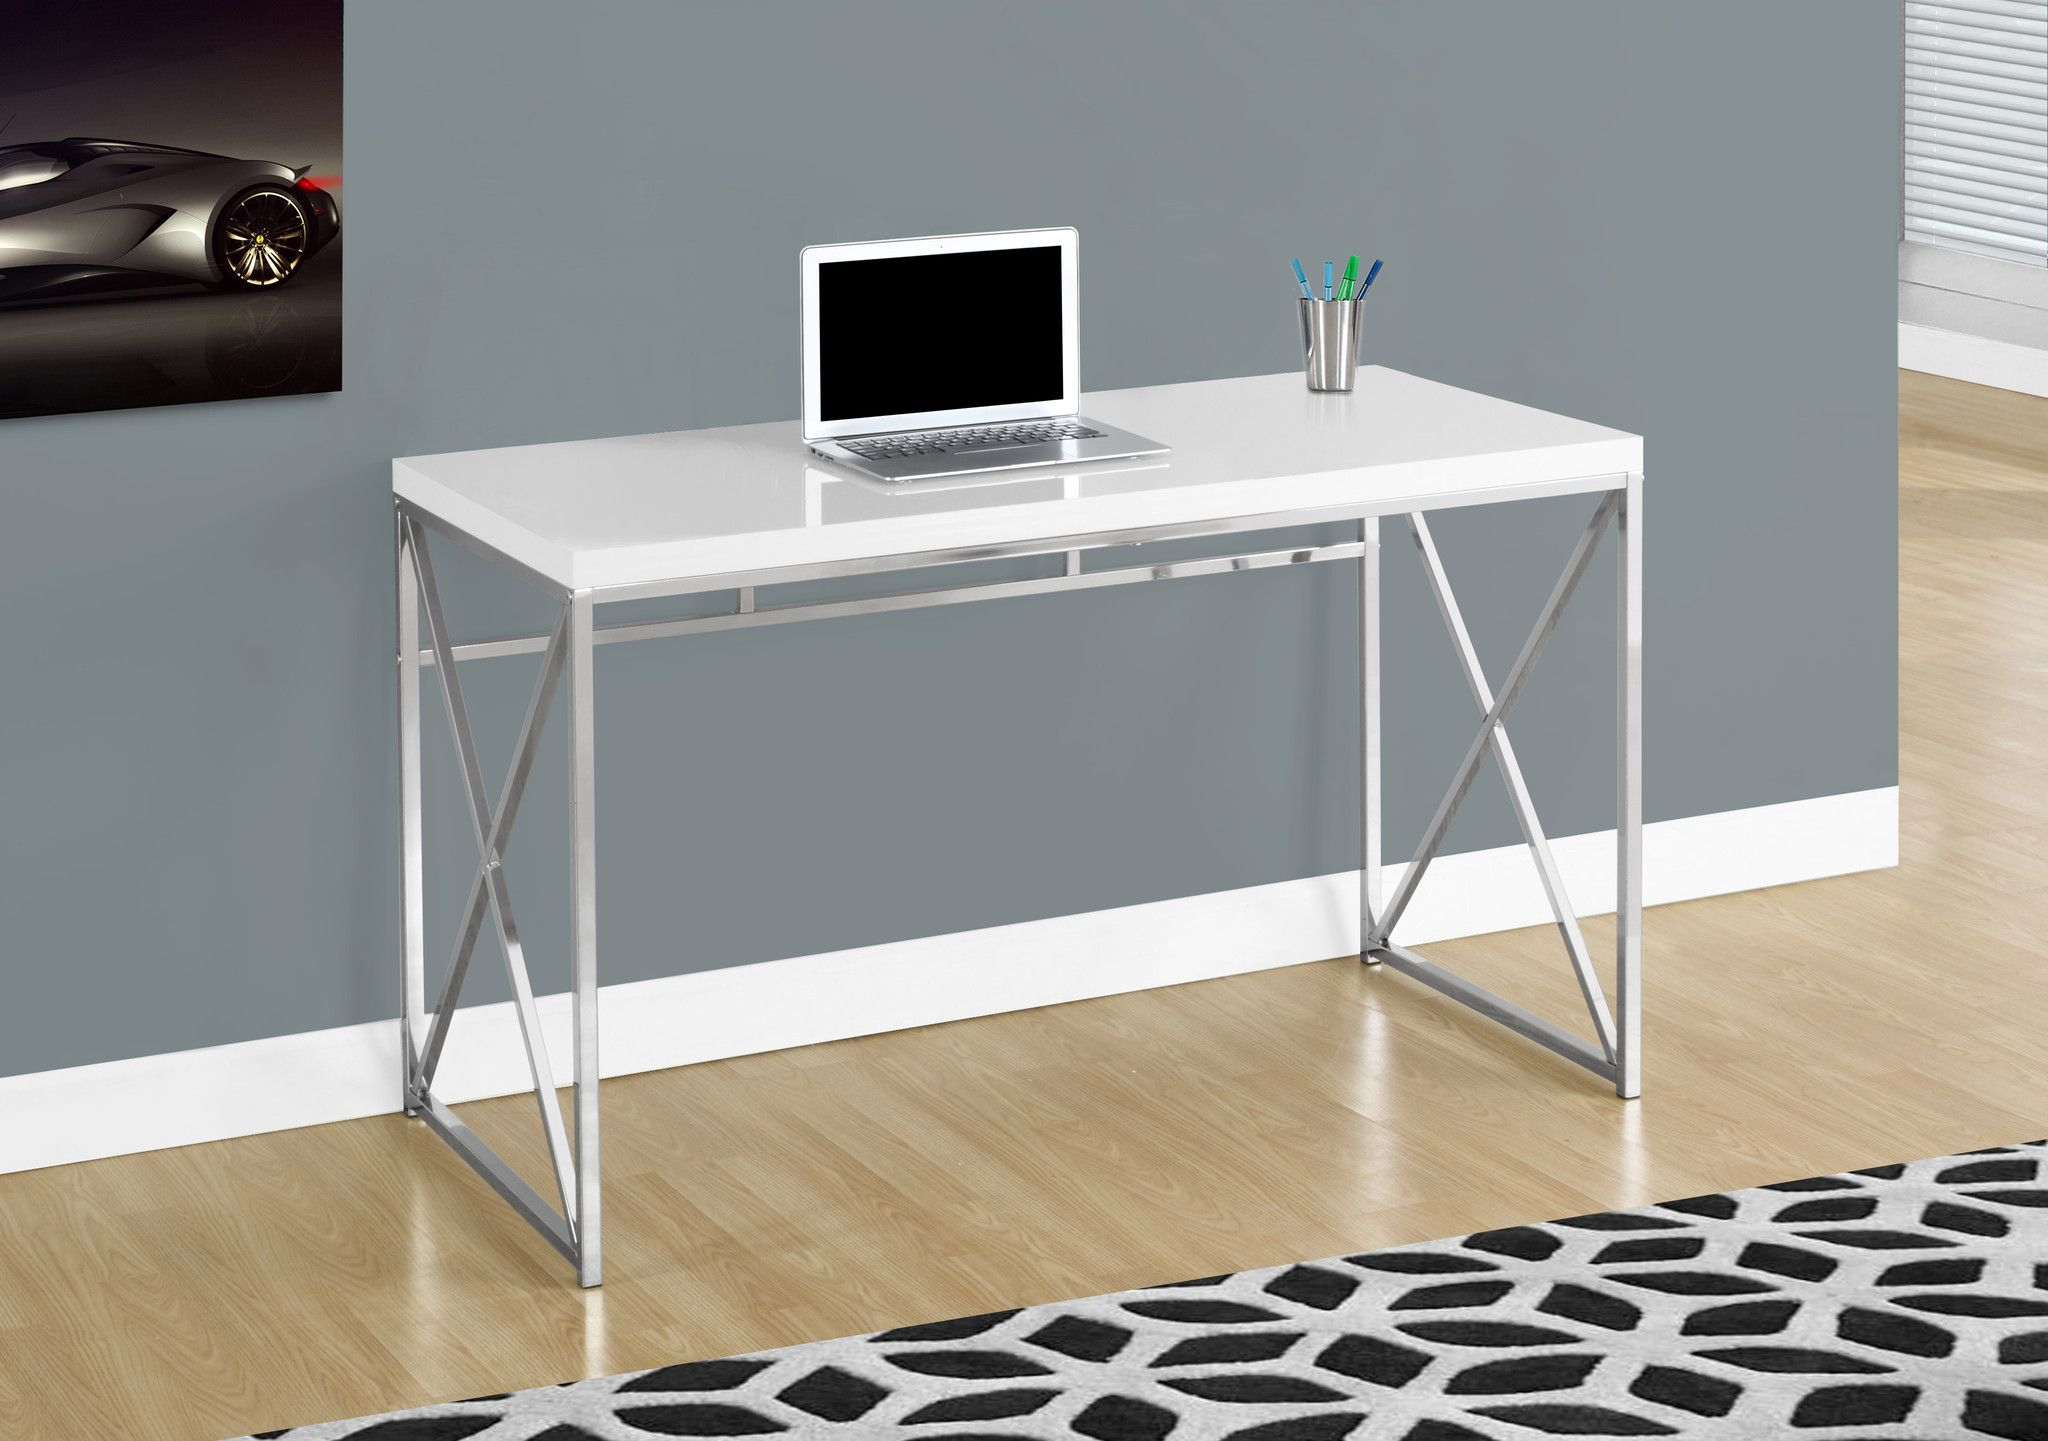 Computer Desk 48 L Glossy White Chrome Metal White Computer Desk Contemporary Desk Metal Computer Desk